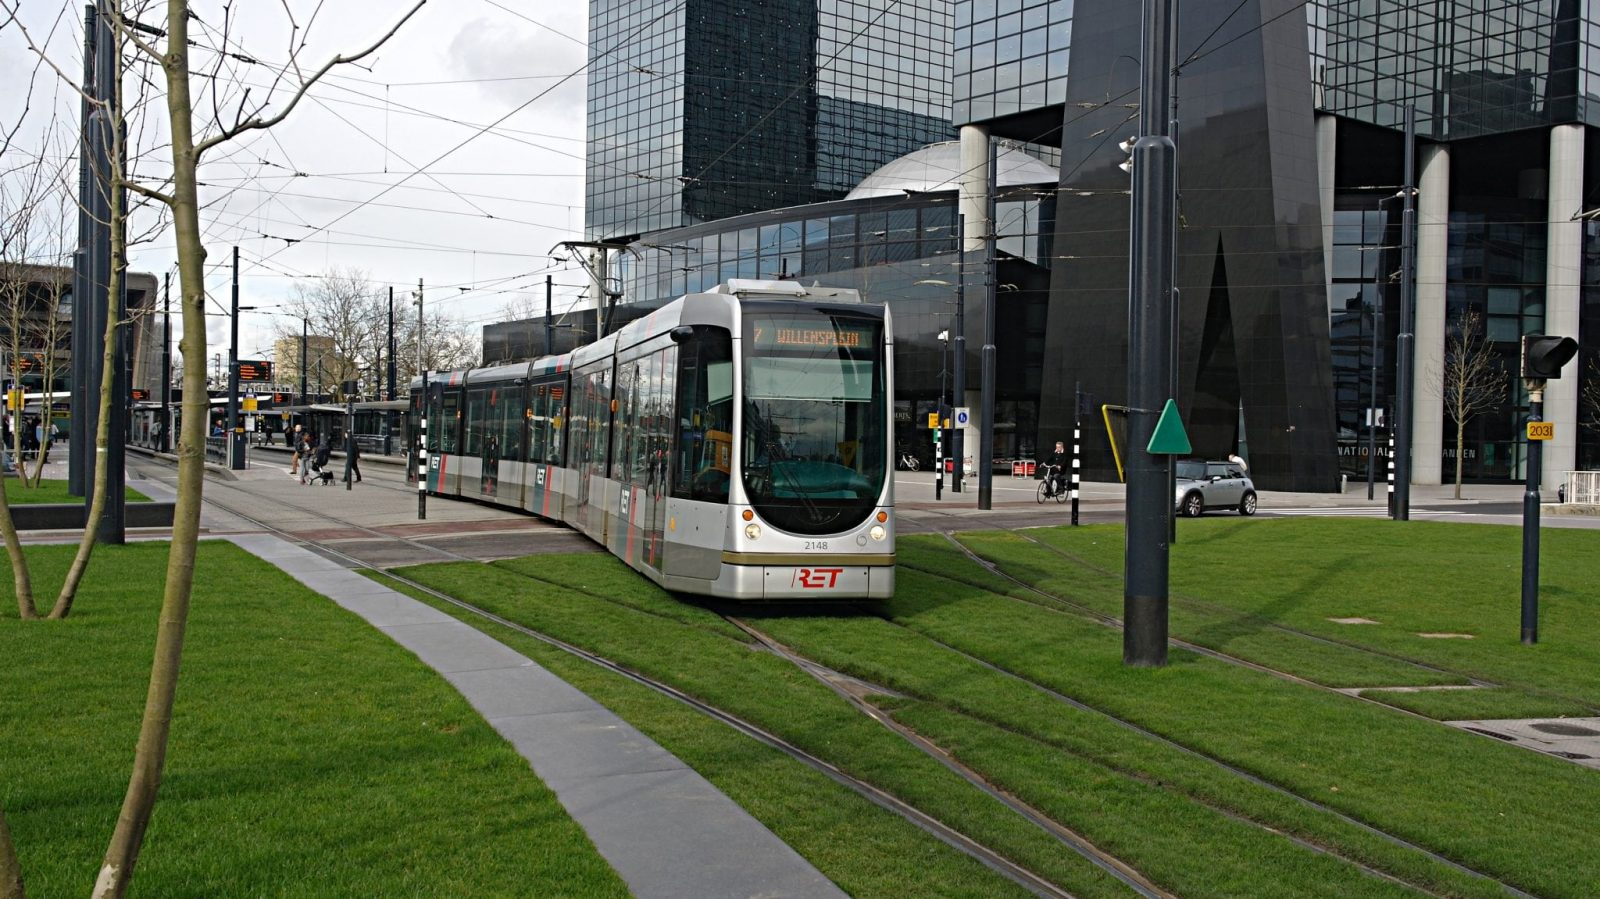 Citadis 2148 RET Stationsplein Rotterdam - 3 Real Life Use Cases for IOTA (MIOTA) That Are Right Around The Corner